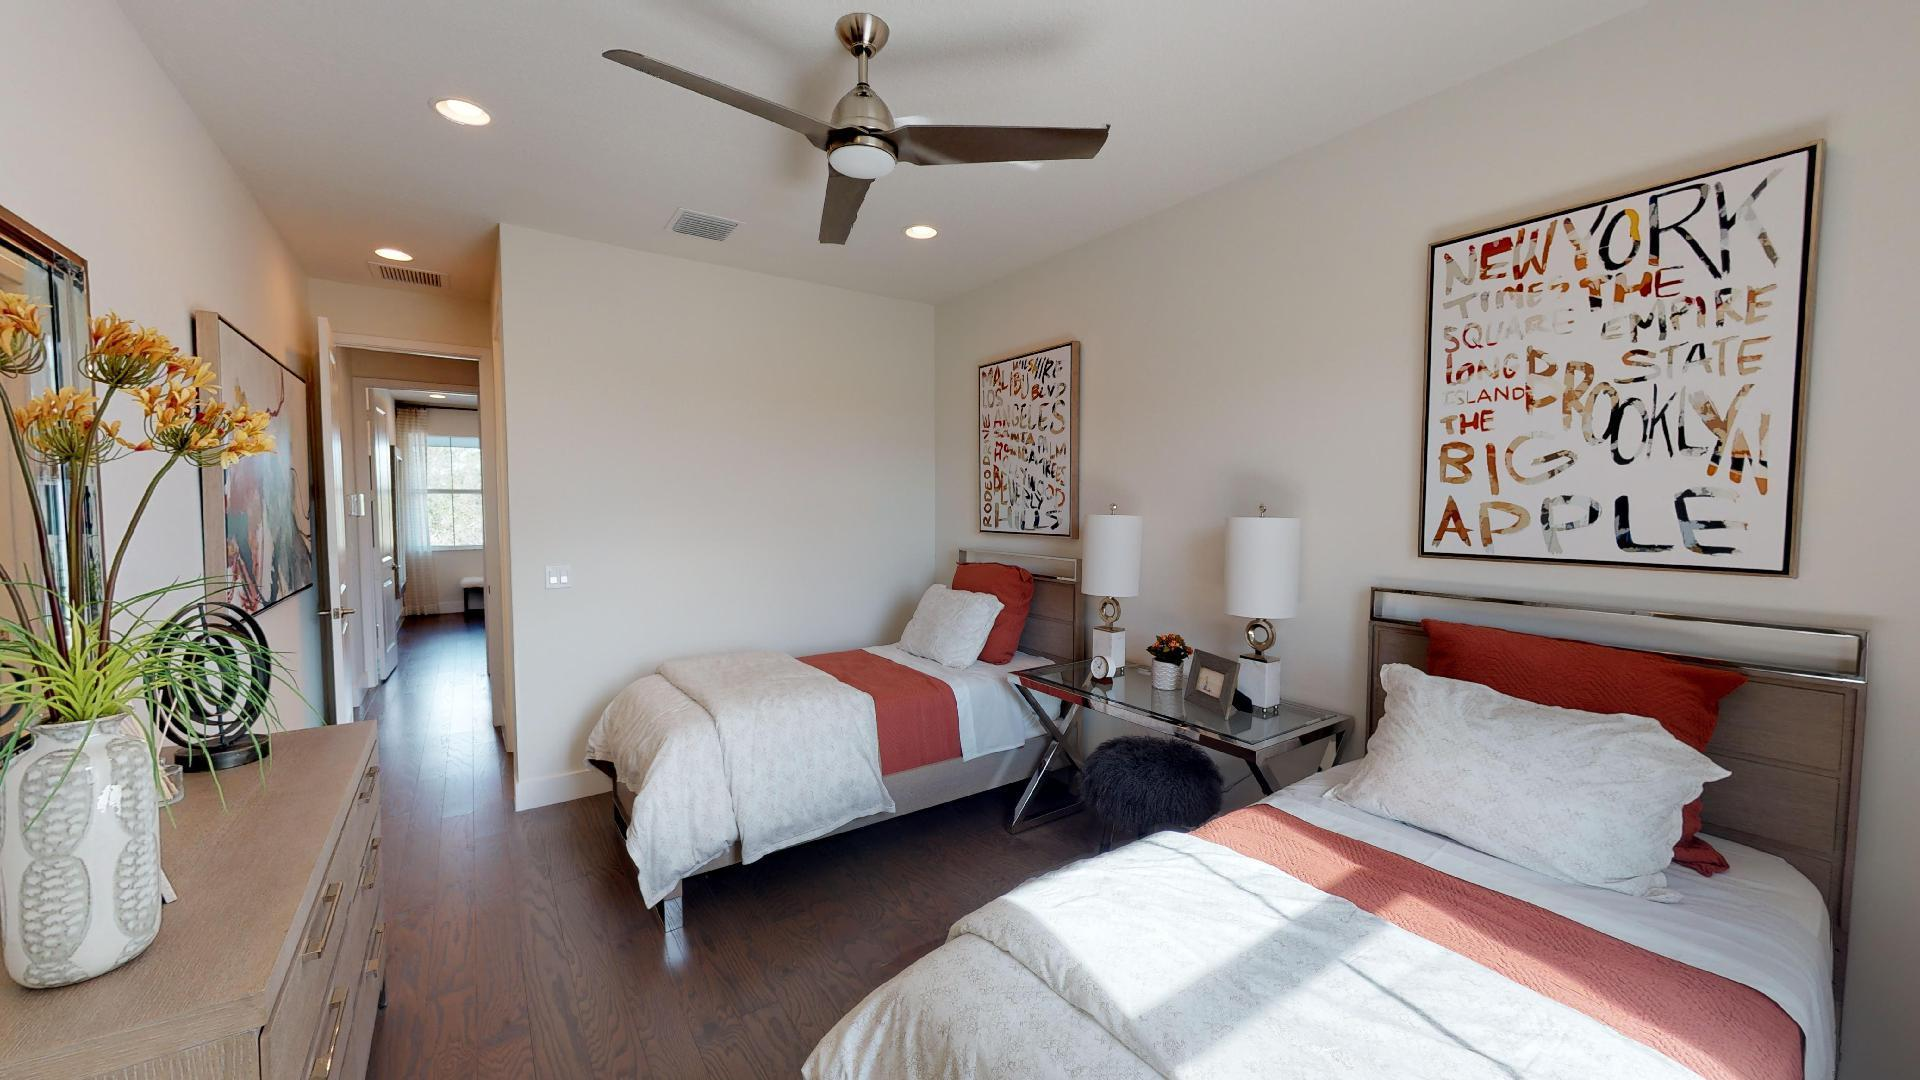 Bedroom featured in the WAVE By Ascend Properties  in Palm Beach County, FL